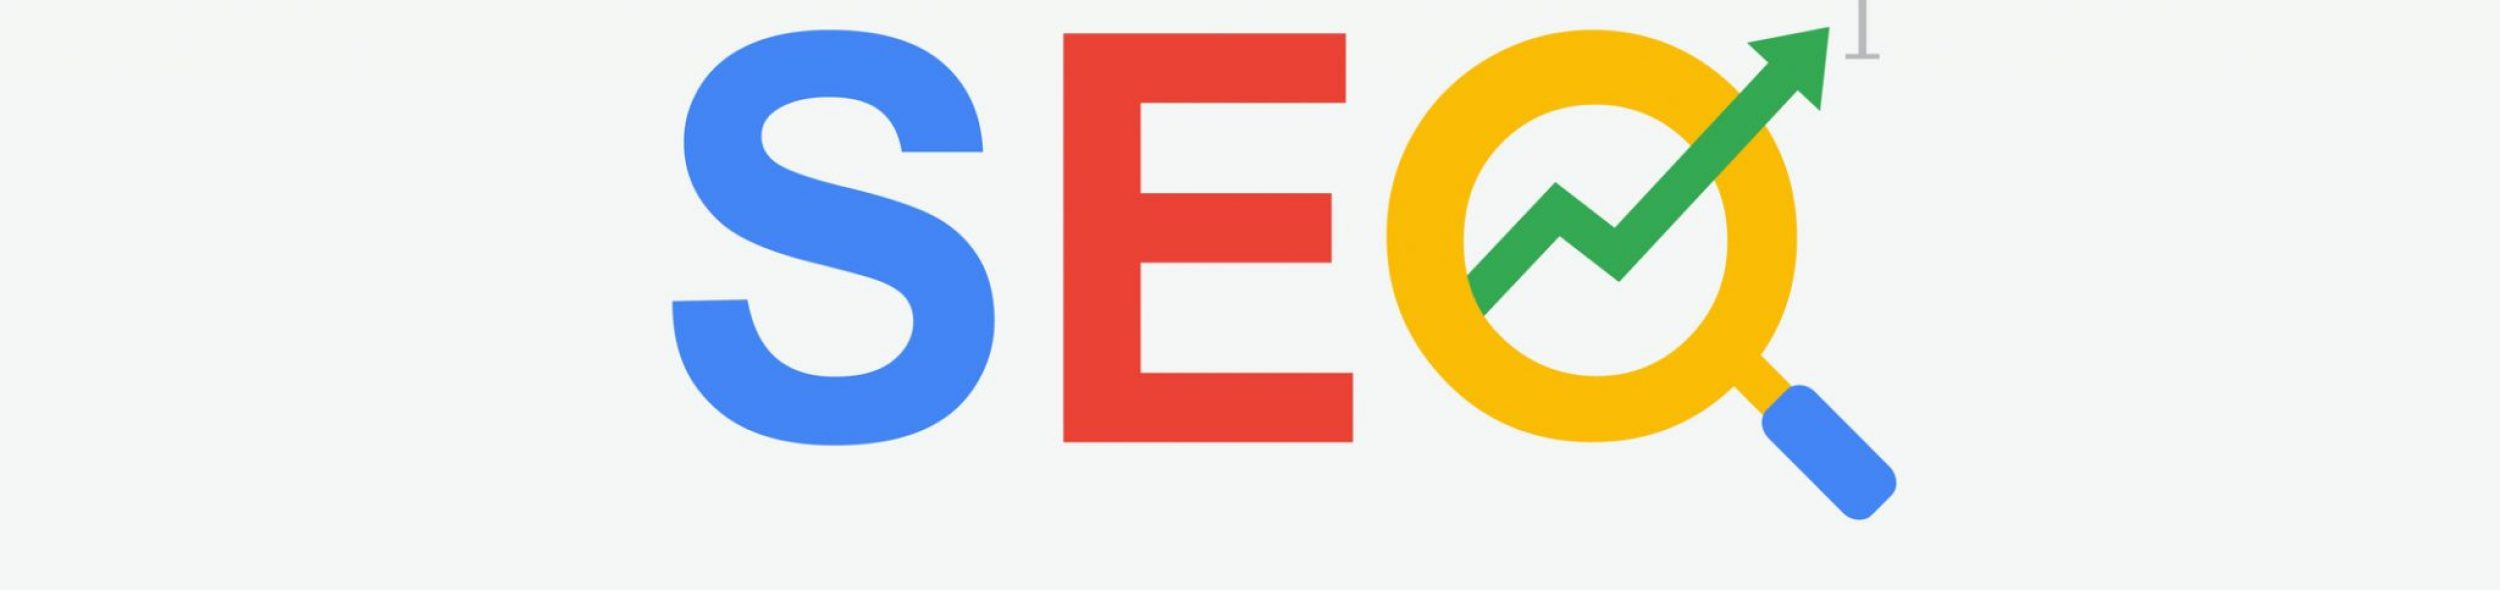 SEO om website voor google te optimaliseren